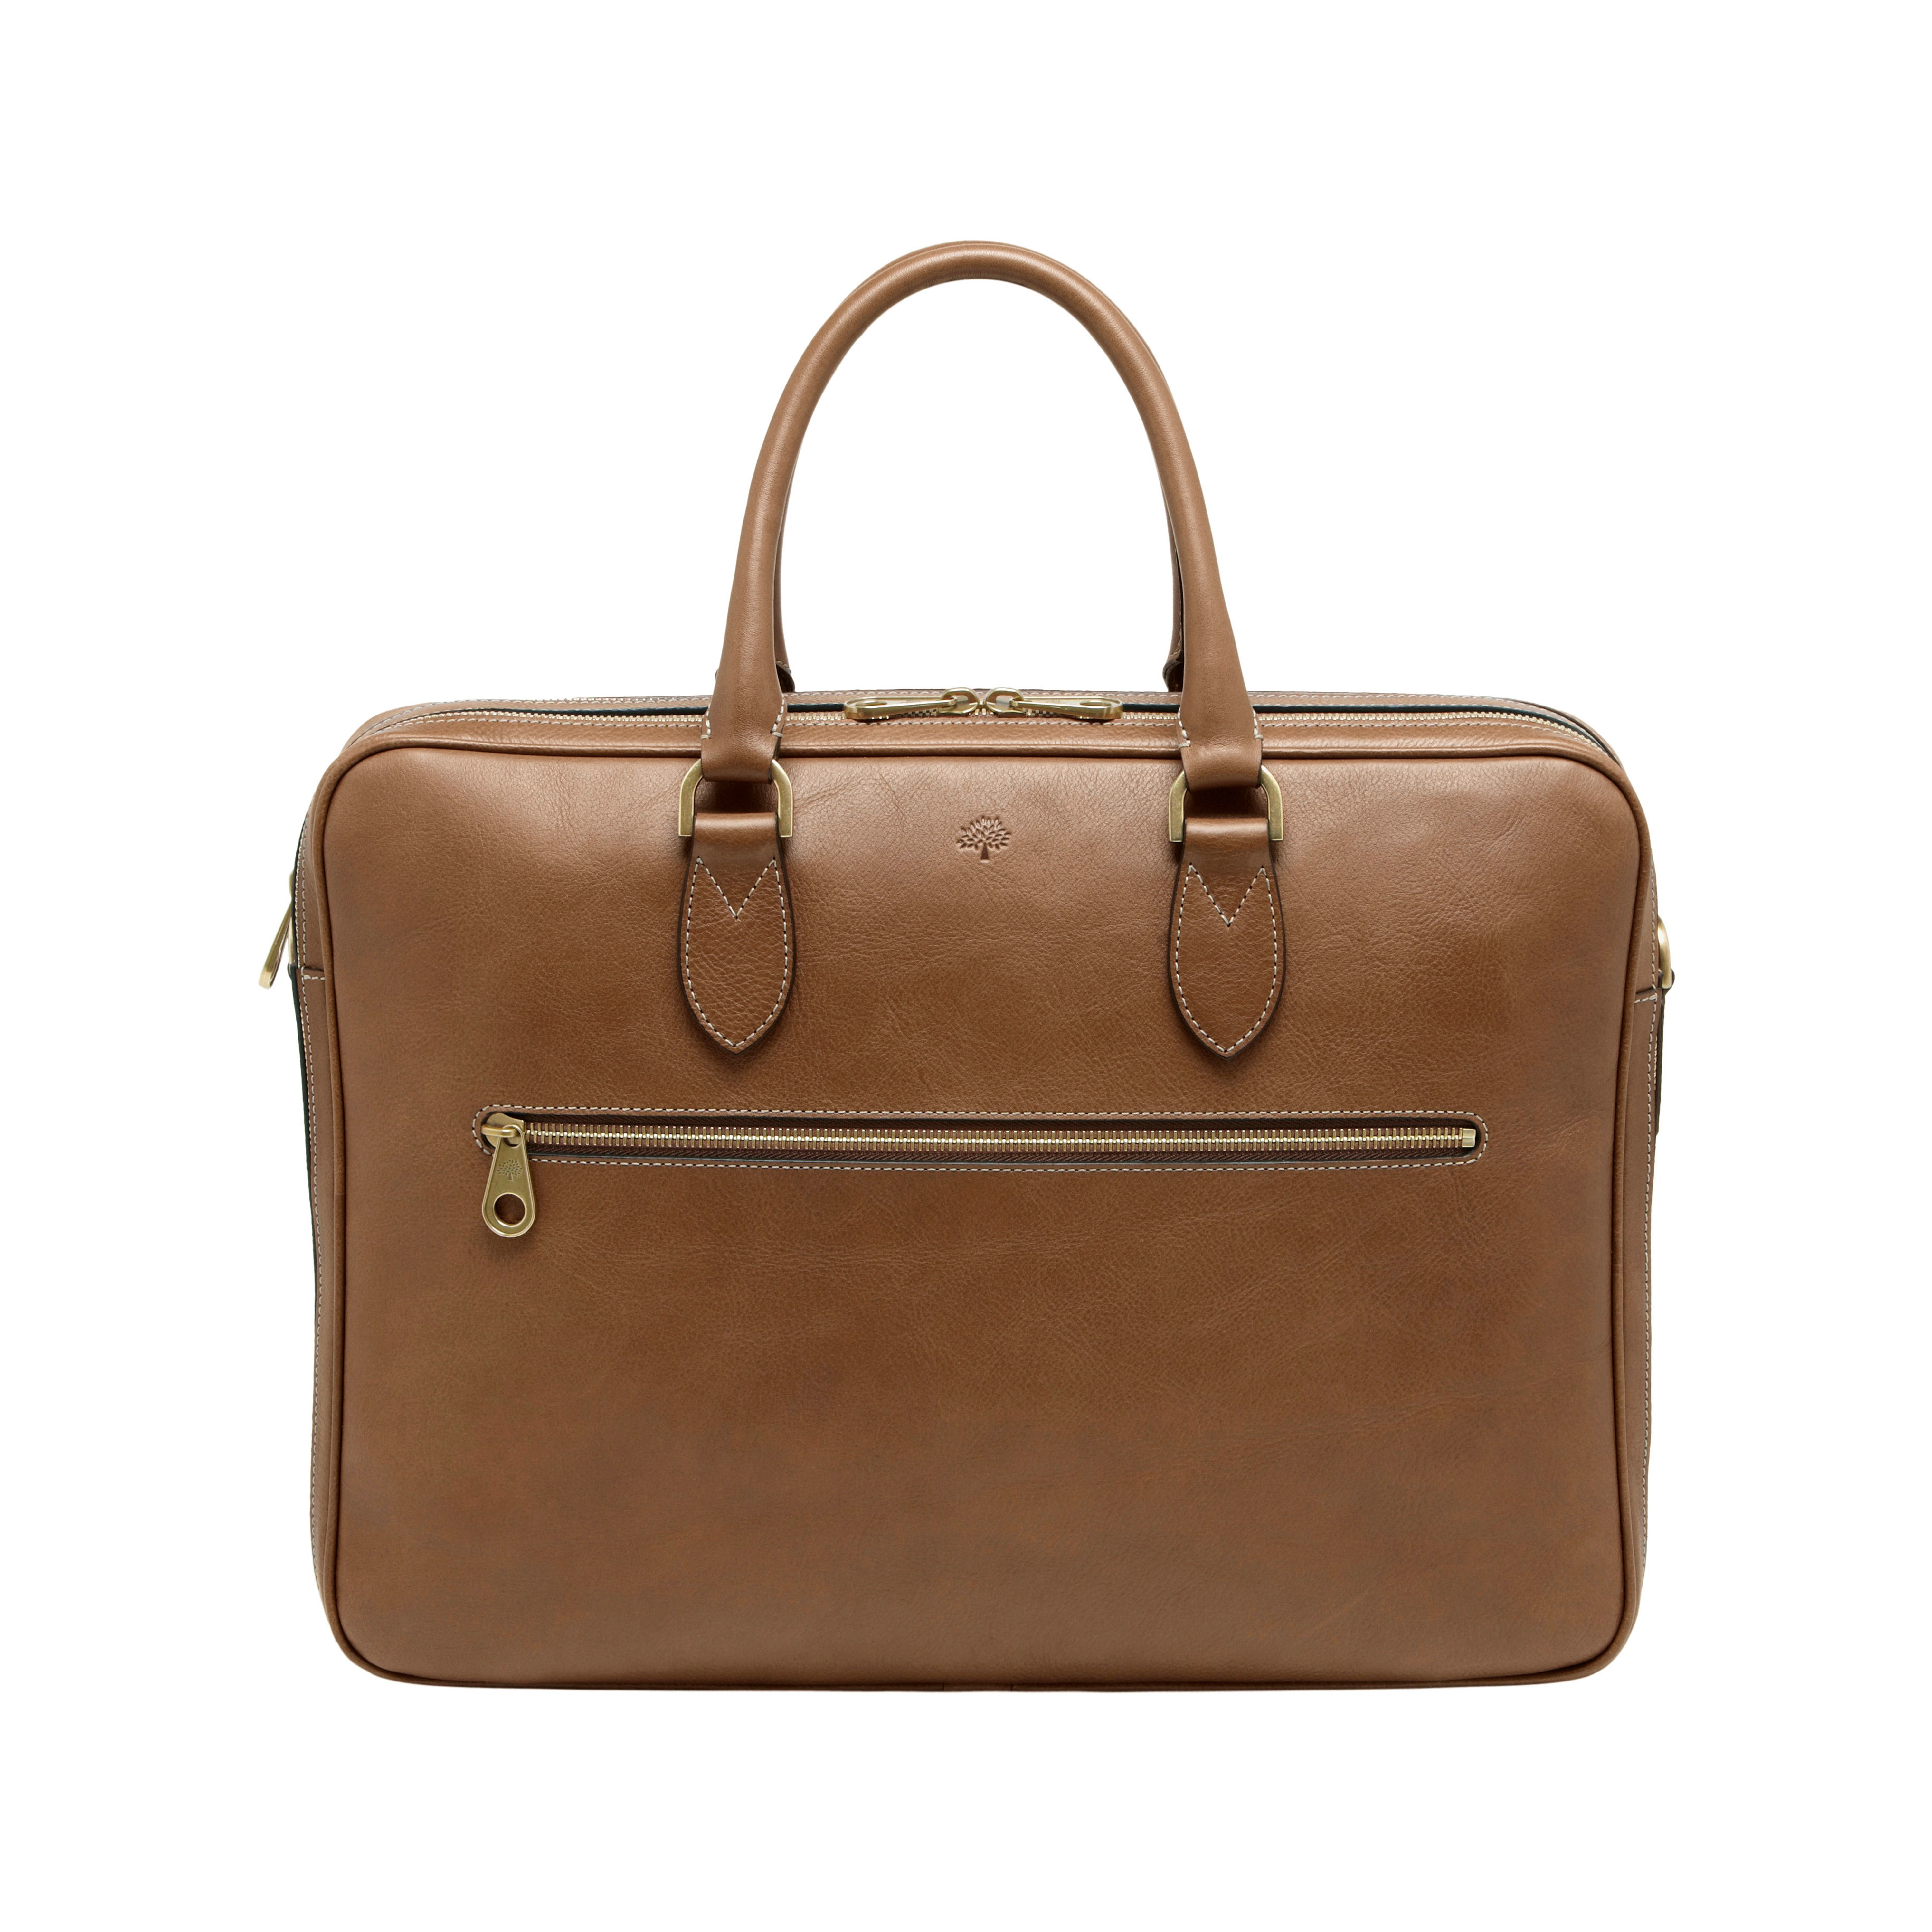 Mulberry Heathcliffe Leather Briefcase In Brown For Men | Lyst